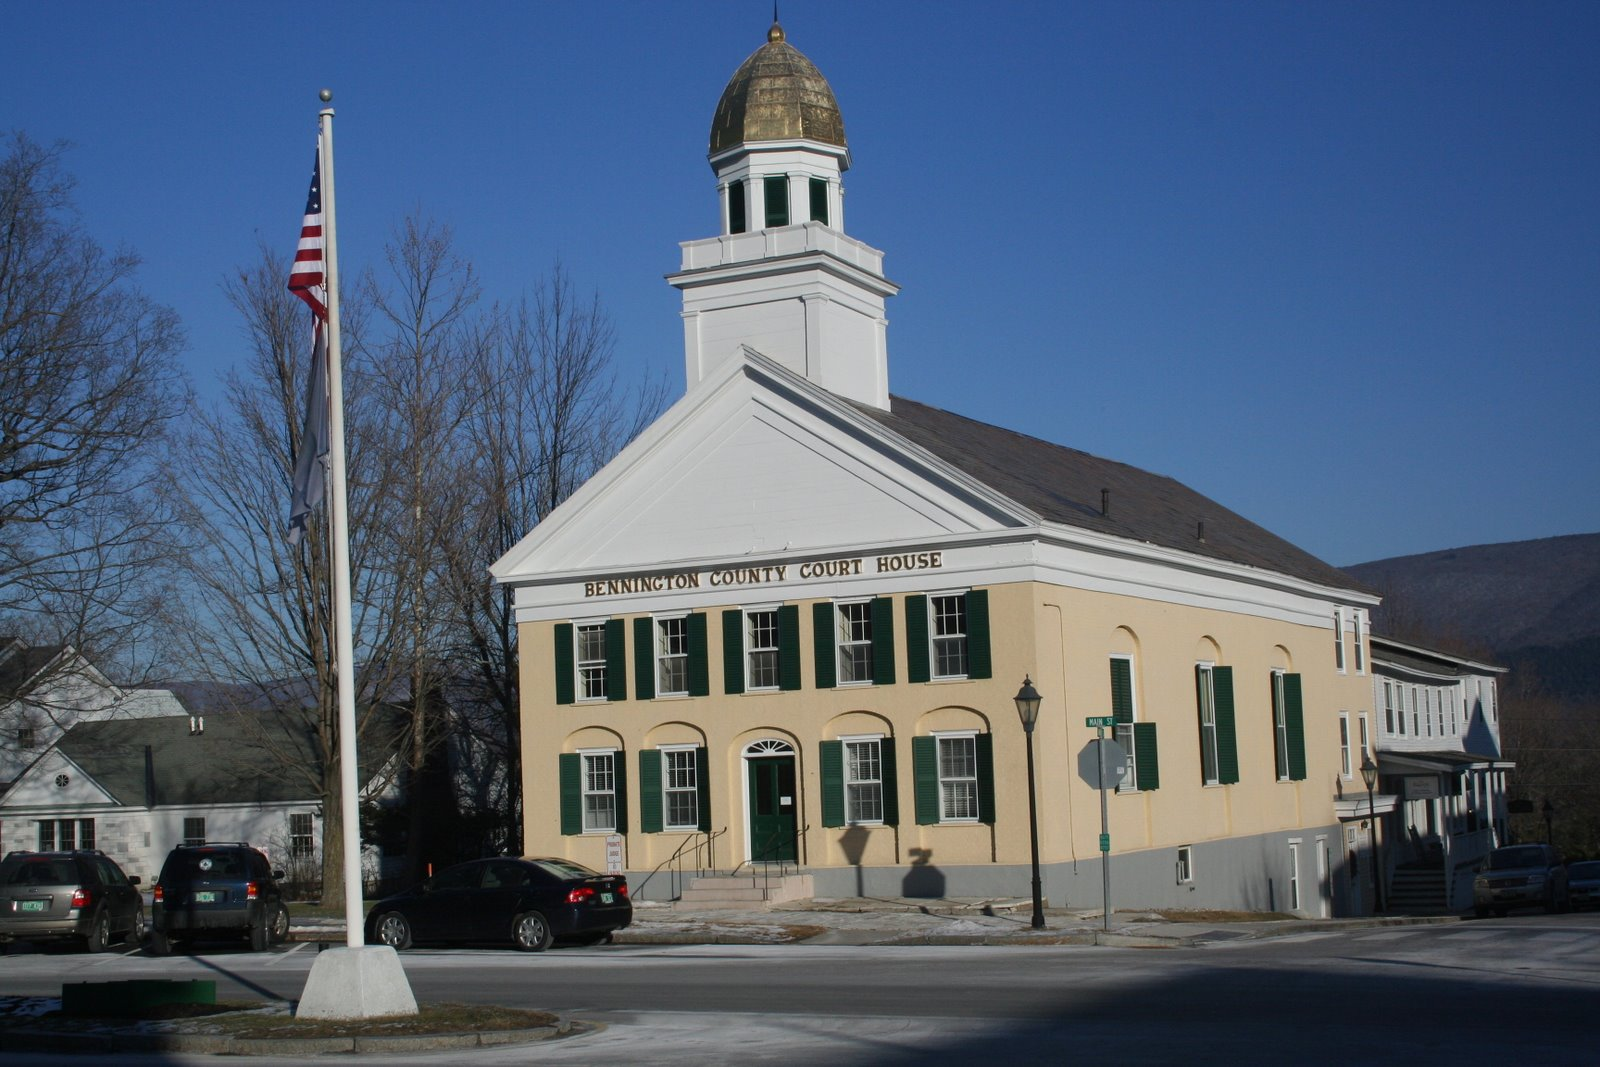 Luxury Hotels In Manchester Vt